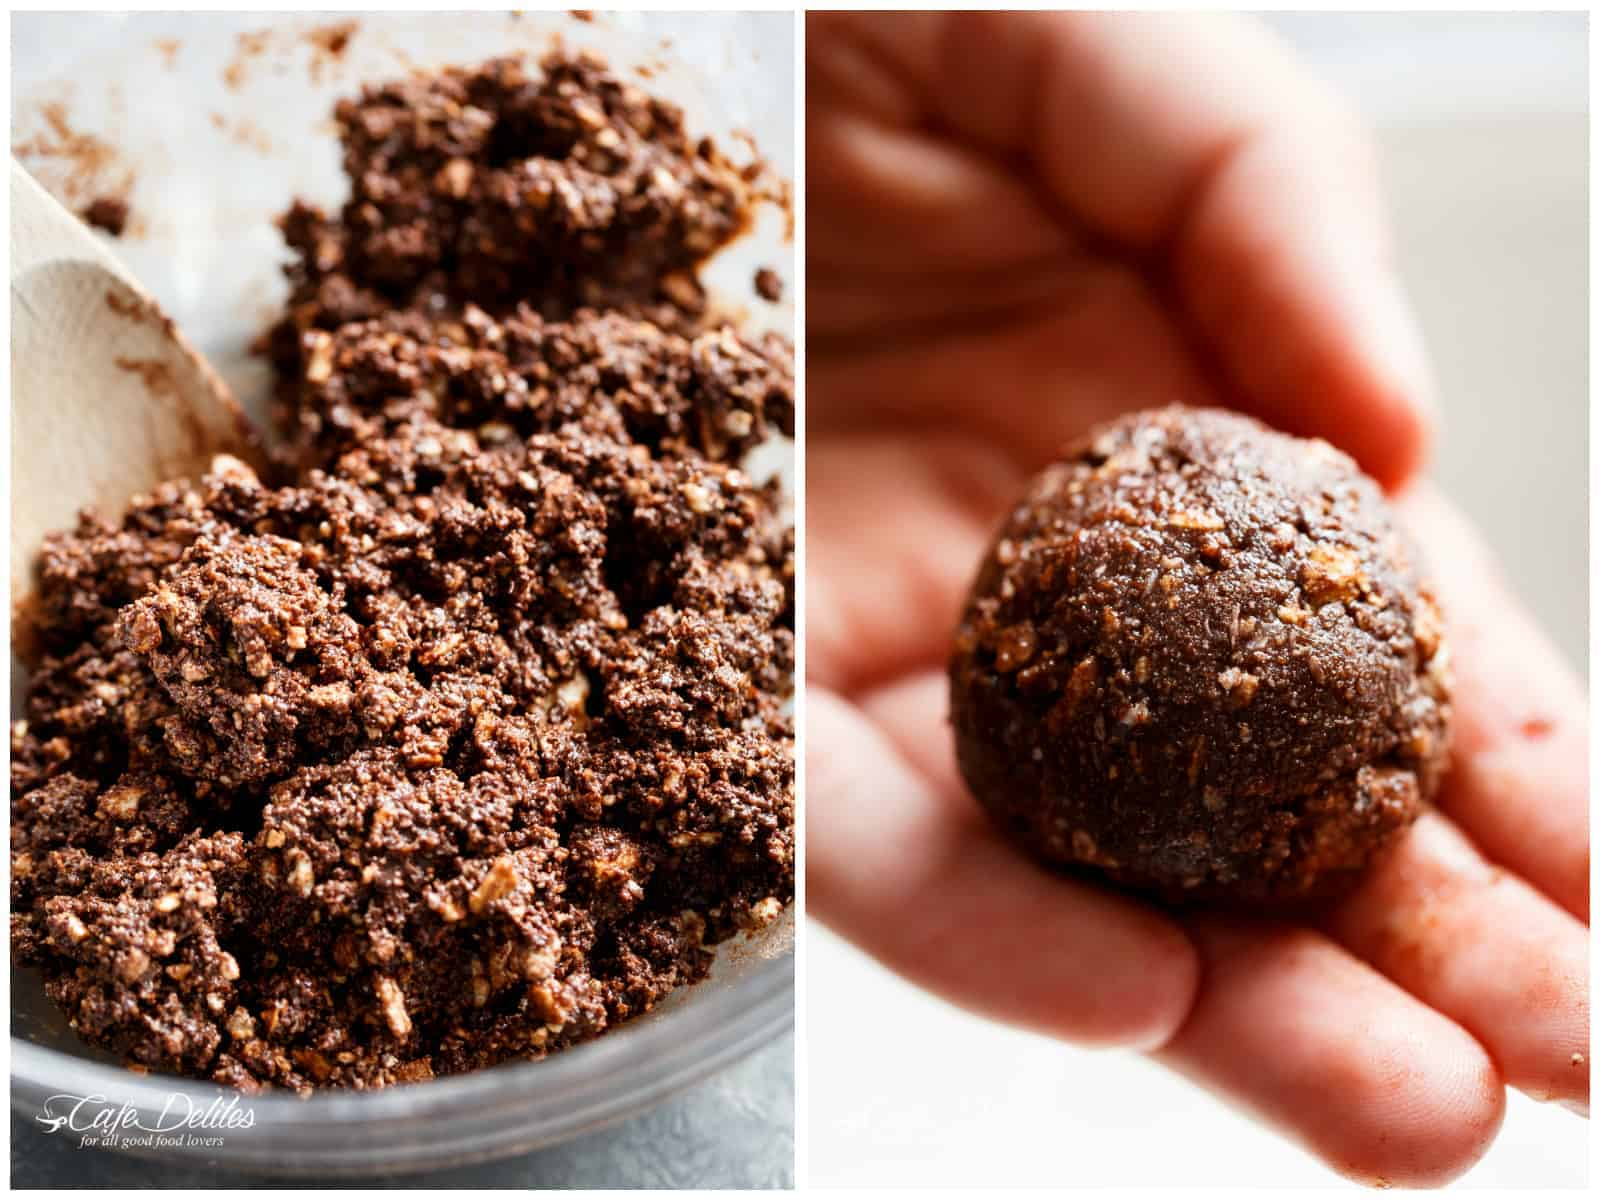 HOW TO MIX AND ROLL Chocolate Coconut Balls | cafedelites.com